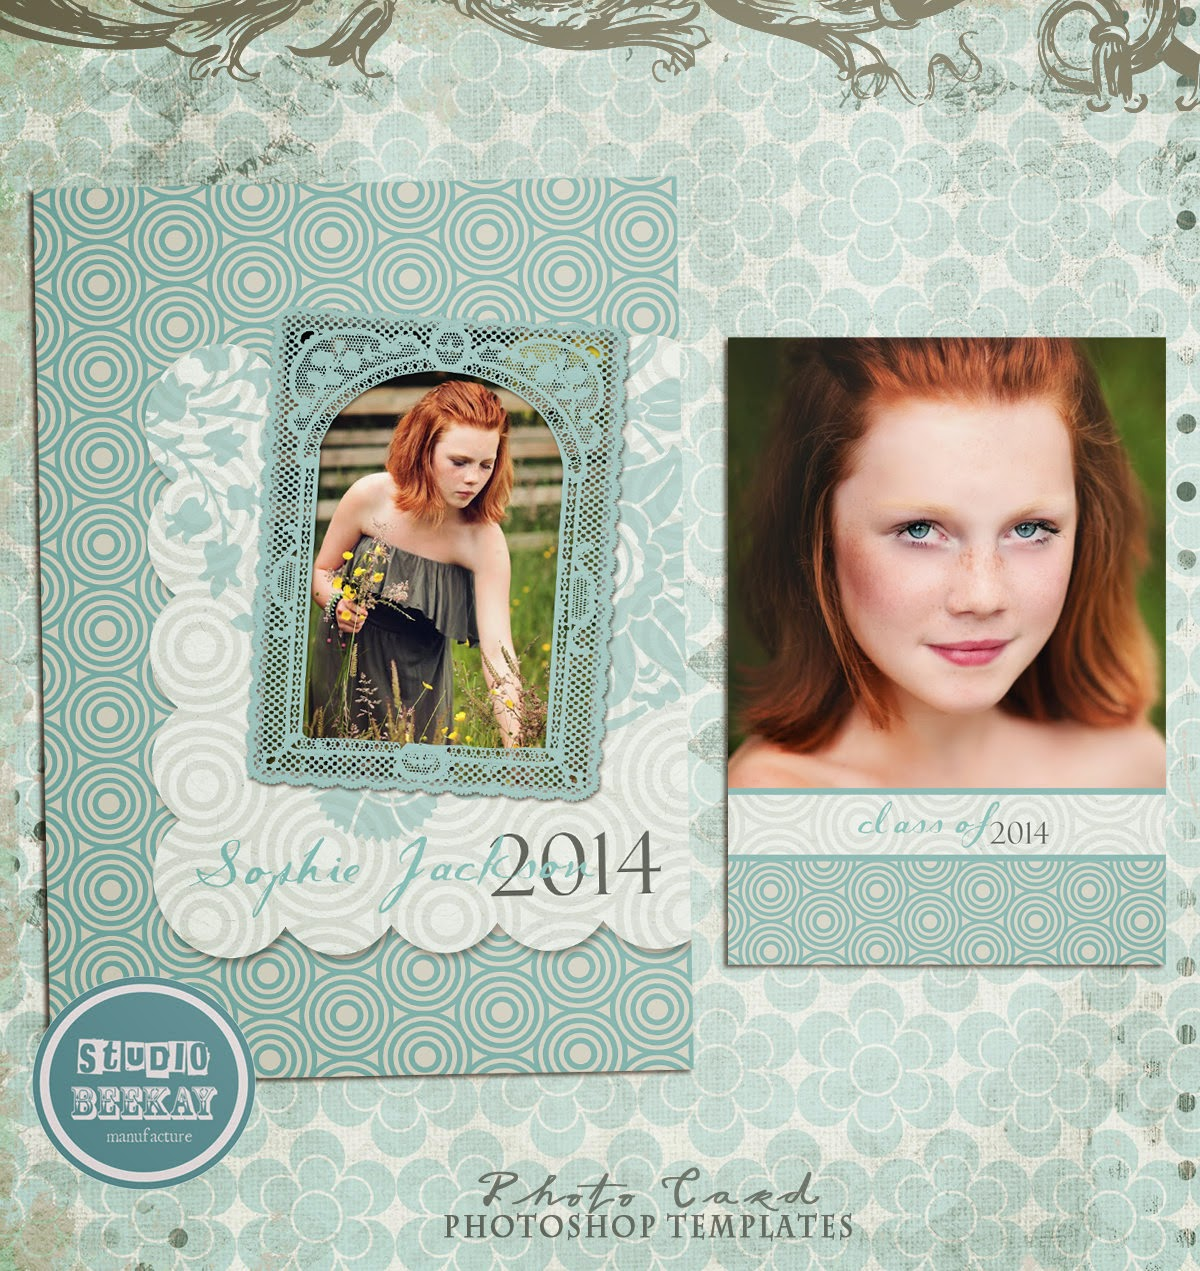 Photoshop templates for pro photographers senior for Free senior templates for photoshop